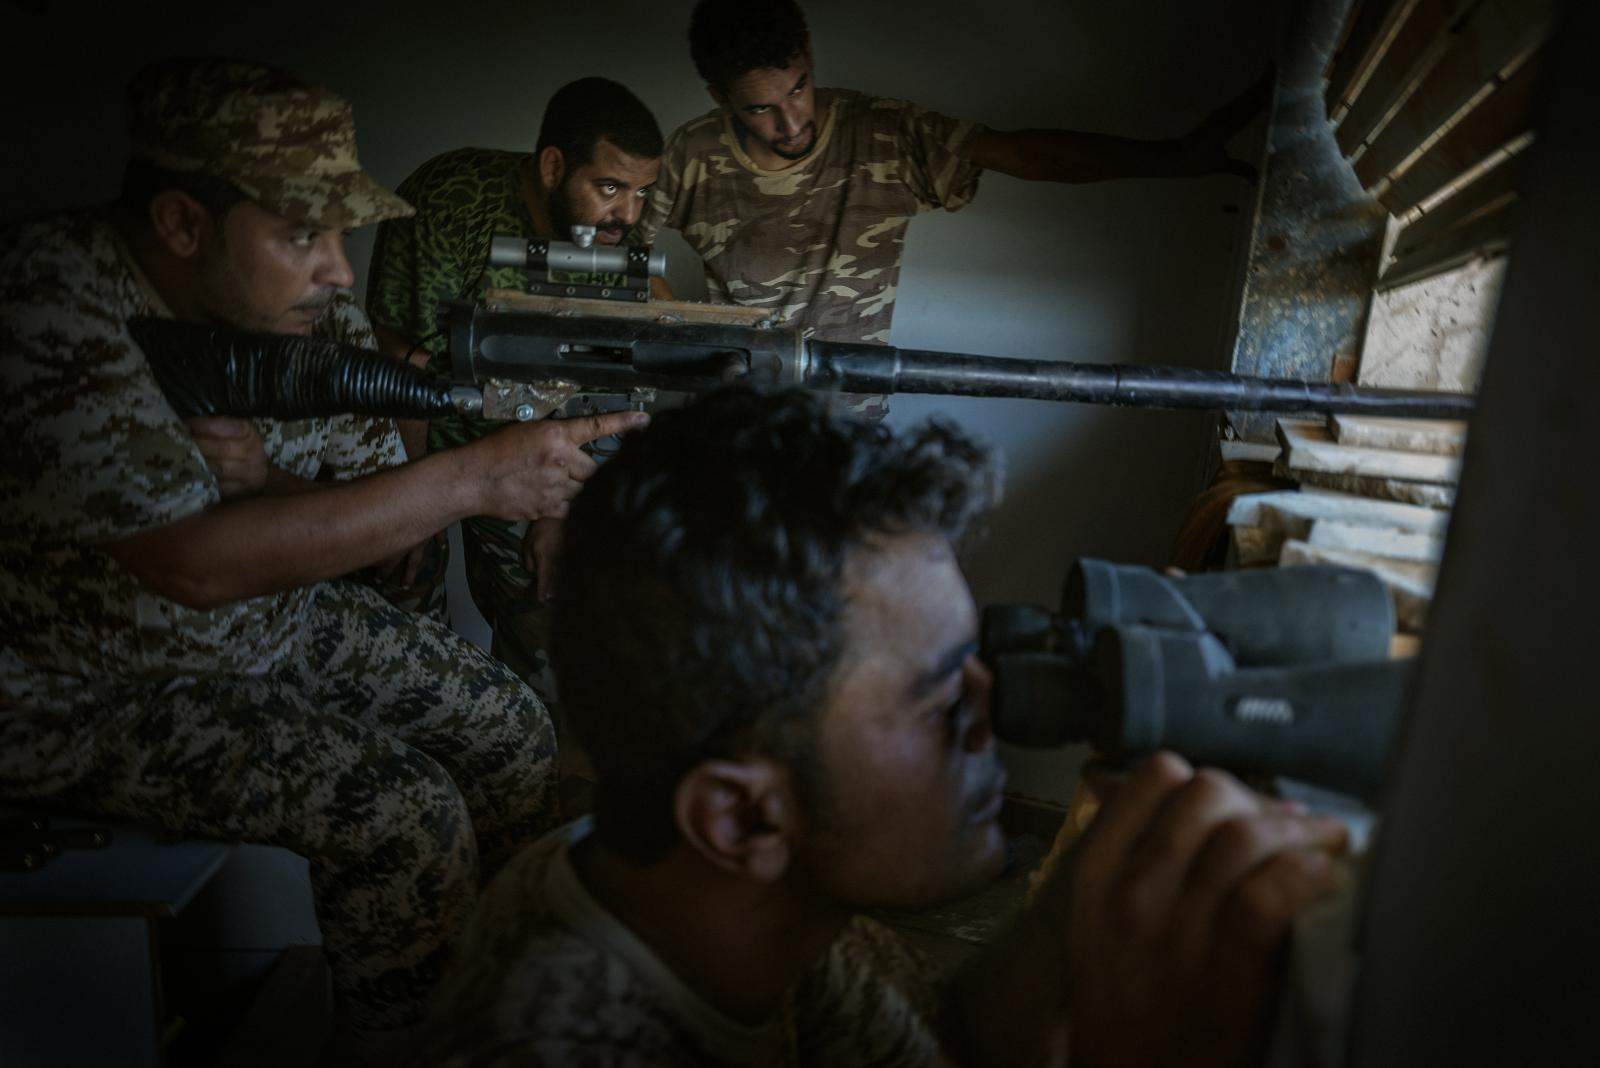 A sniper with a homemade rifle outfitted with a DShK machine gun barrel fires at ISIS positions in Sirte (2016).